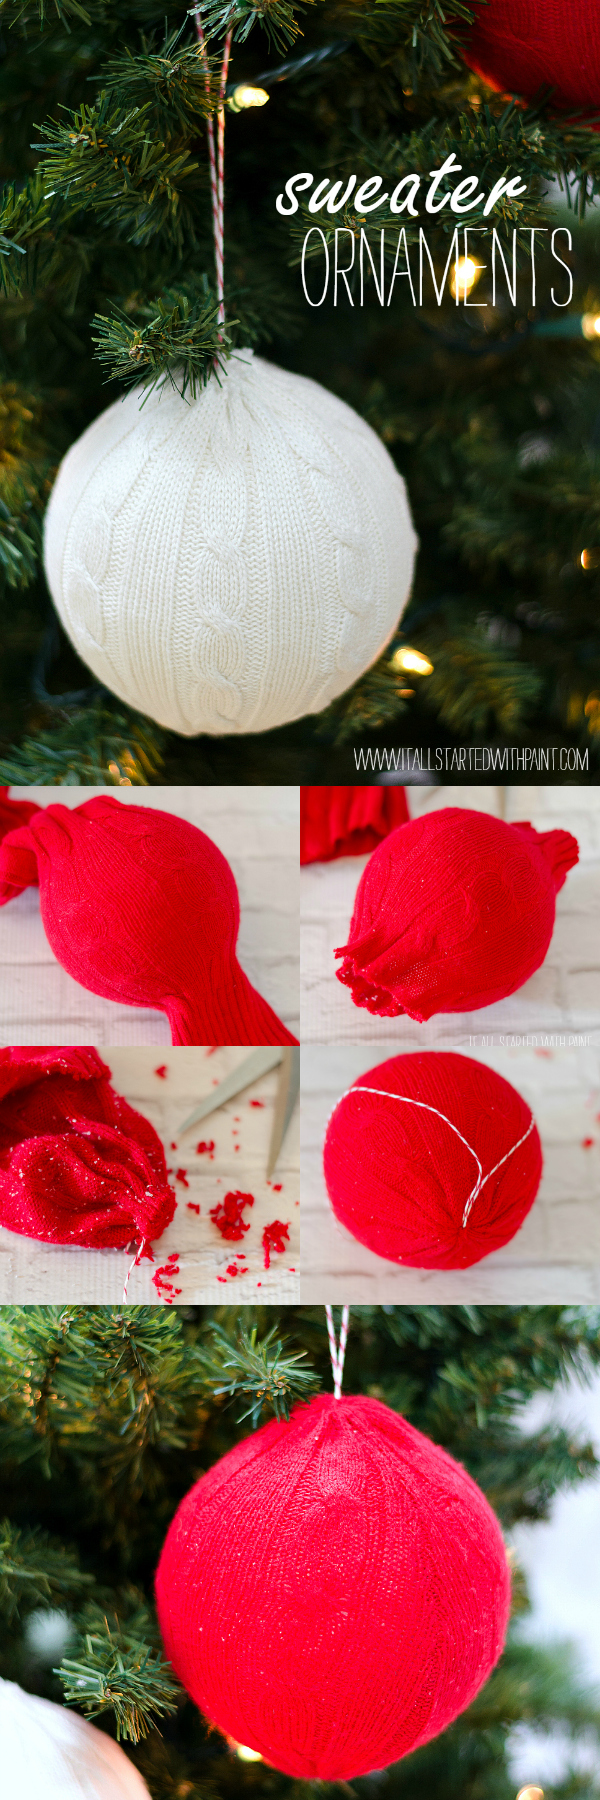 Christmas Crafts handmade ornament ideas for kids